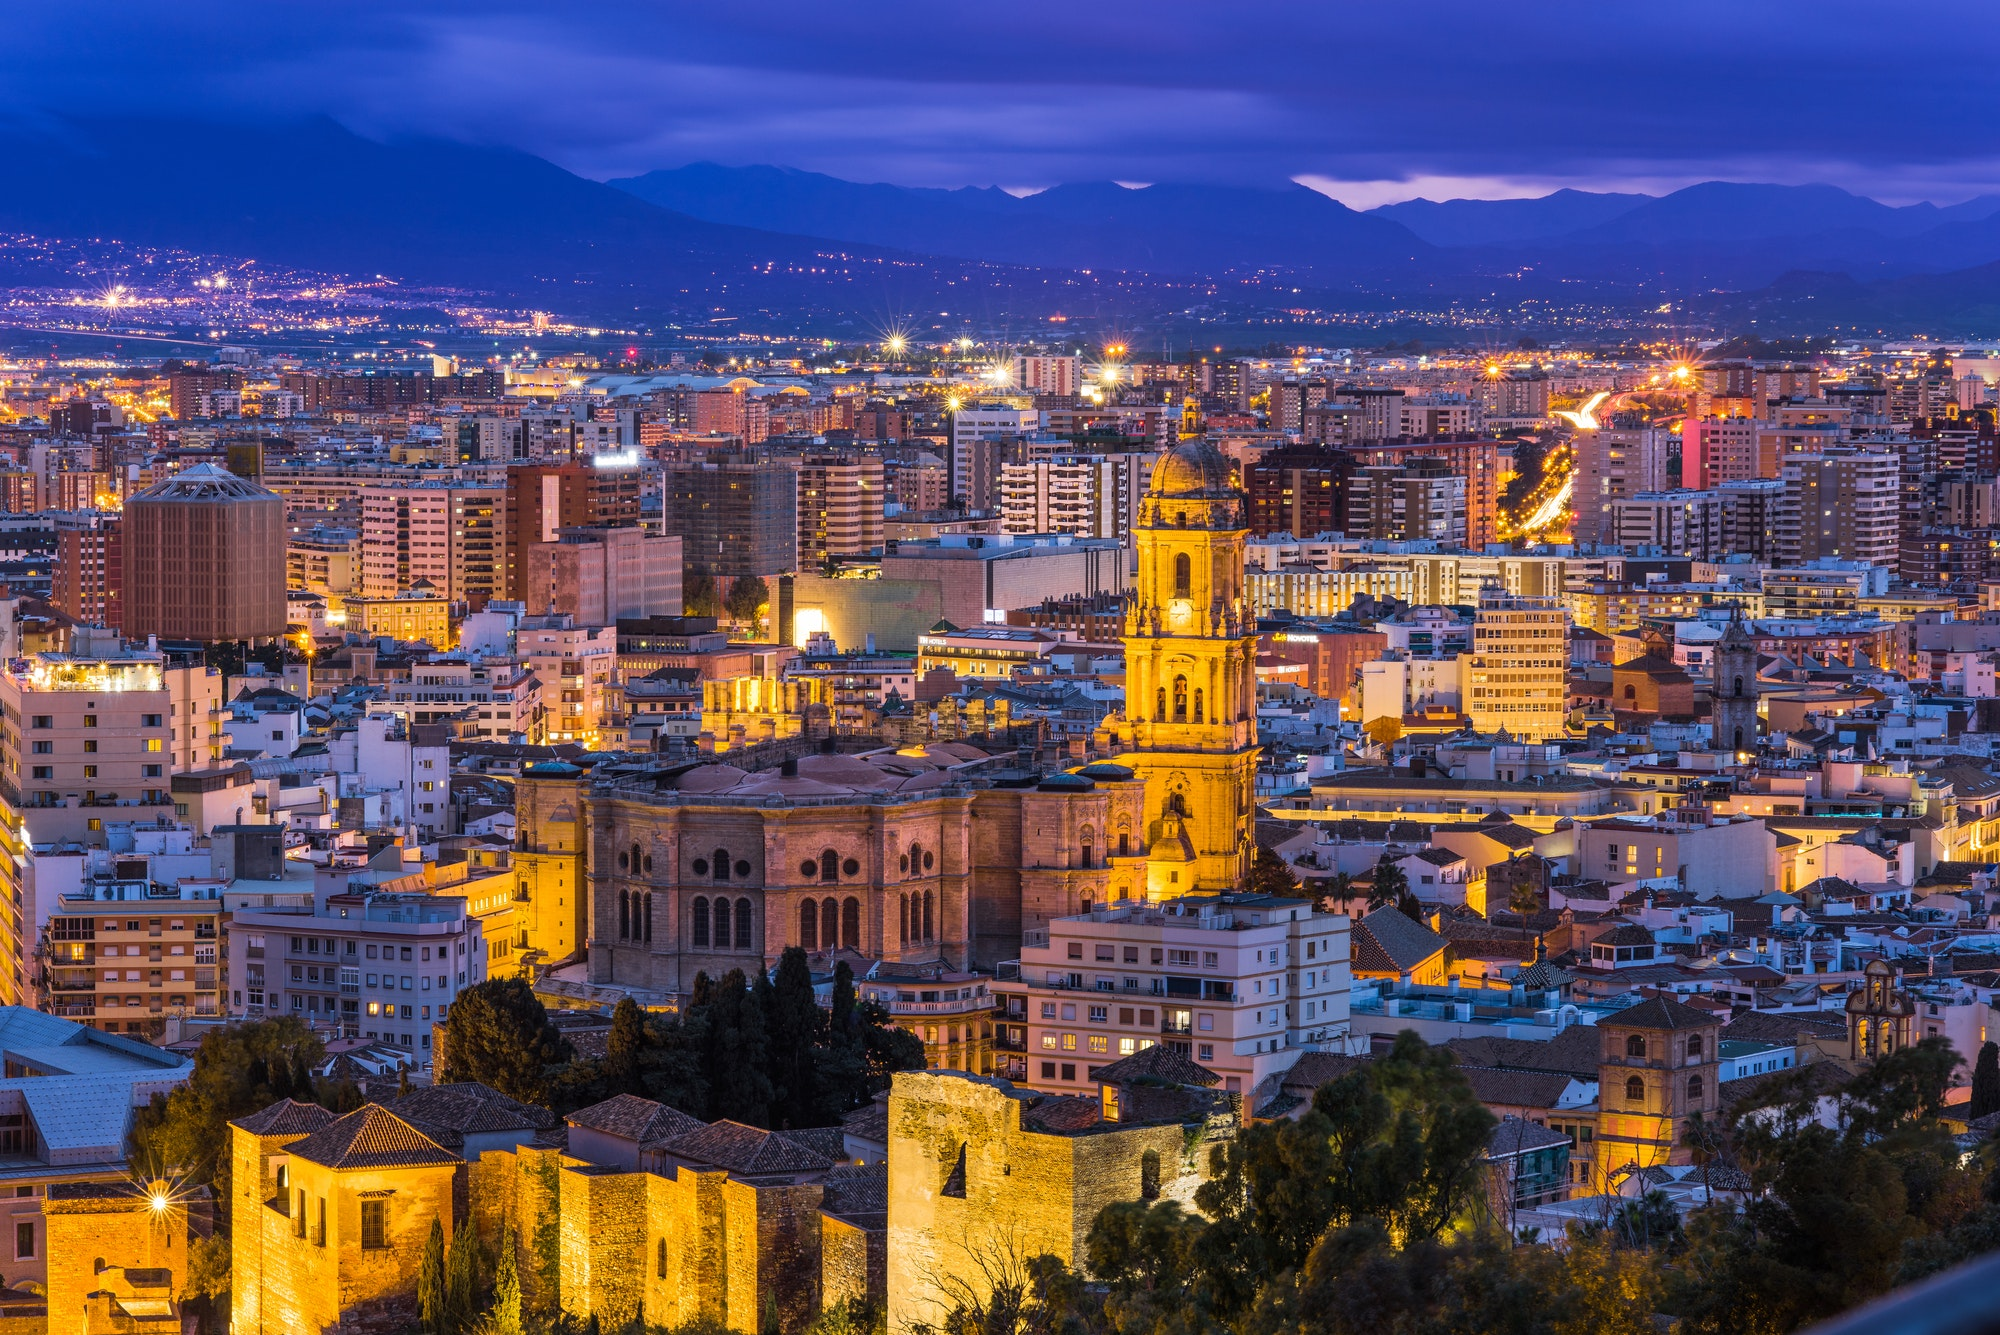 Andalucia saw a 6.5% increase in home sales